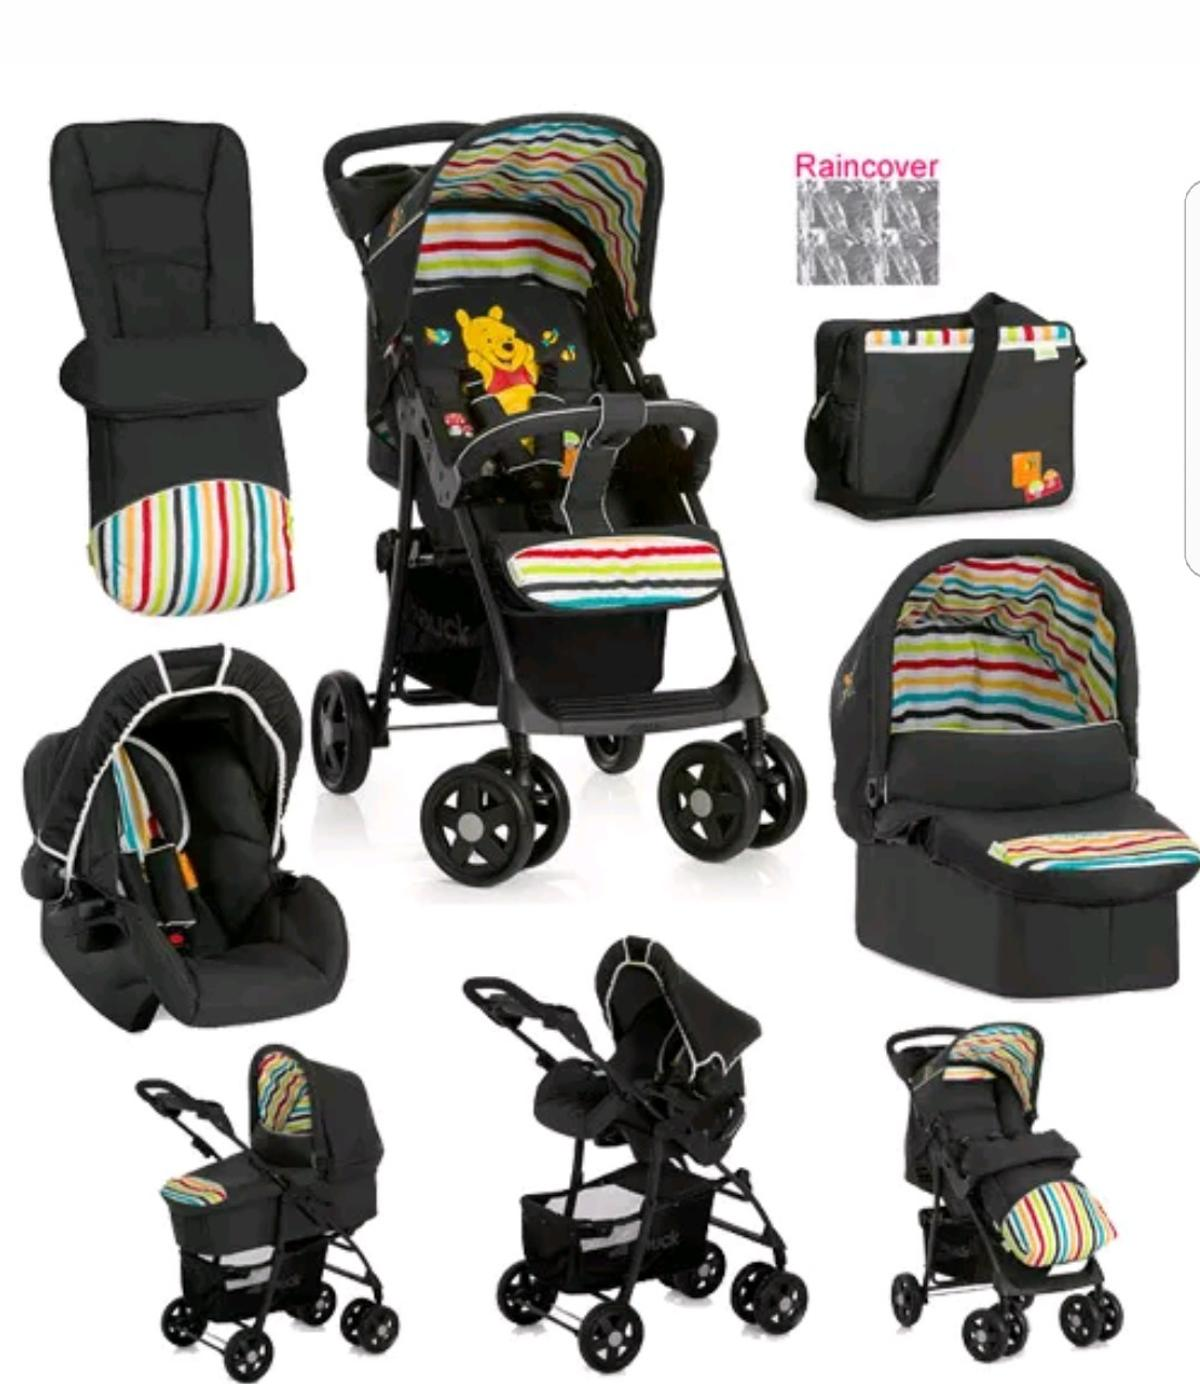 Winnie The Pooh Travel System Hauck In St3 Meir For 50 00 For Sale Shpock